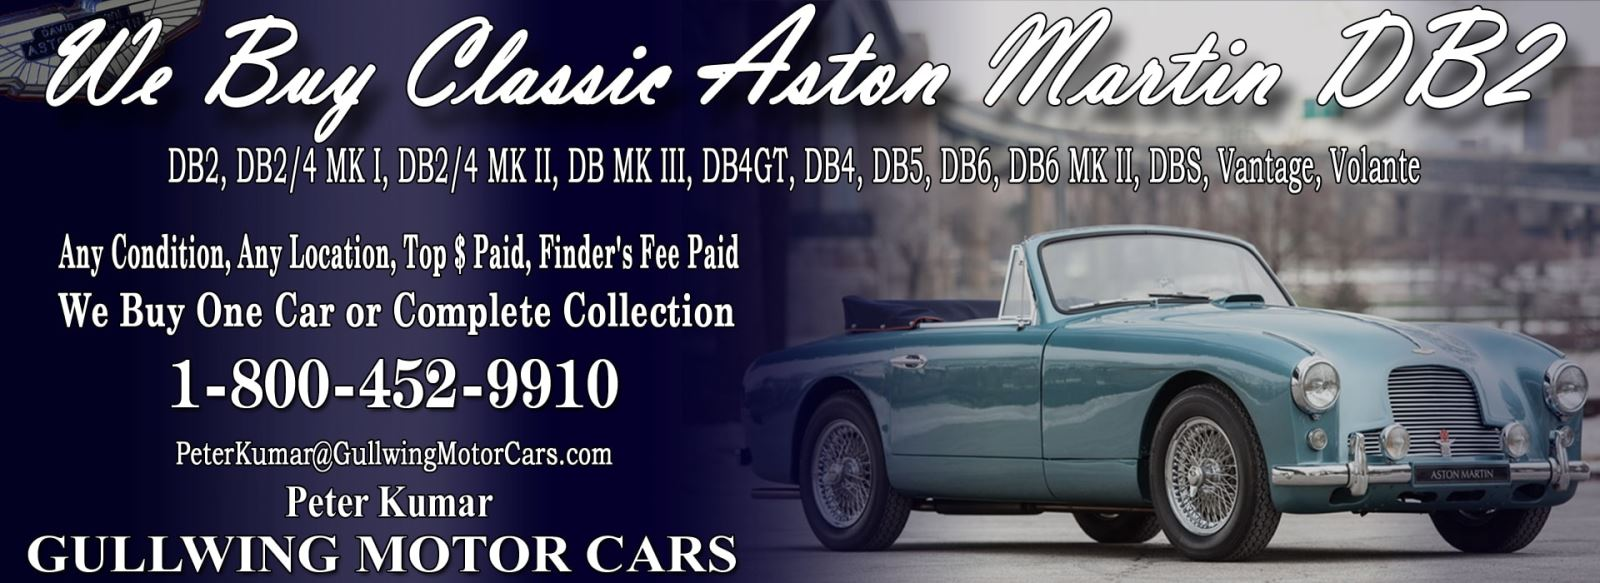 Classic Aston Martin DB2 for sale, we buy vintage Aston Martin DB2. Call Peter Kumar. Gullwing Motor